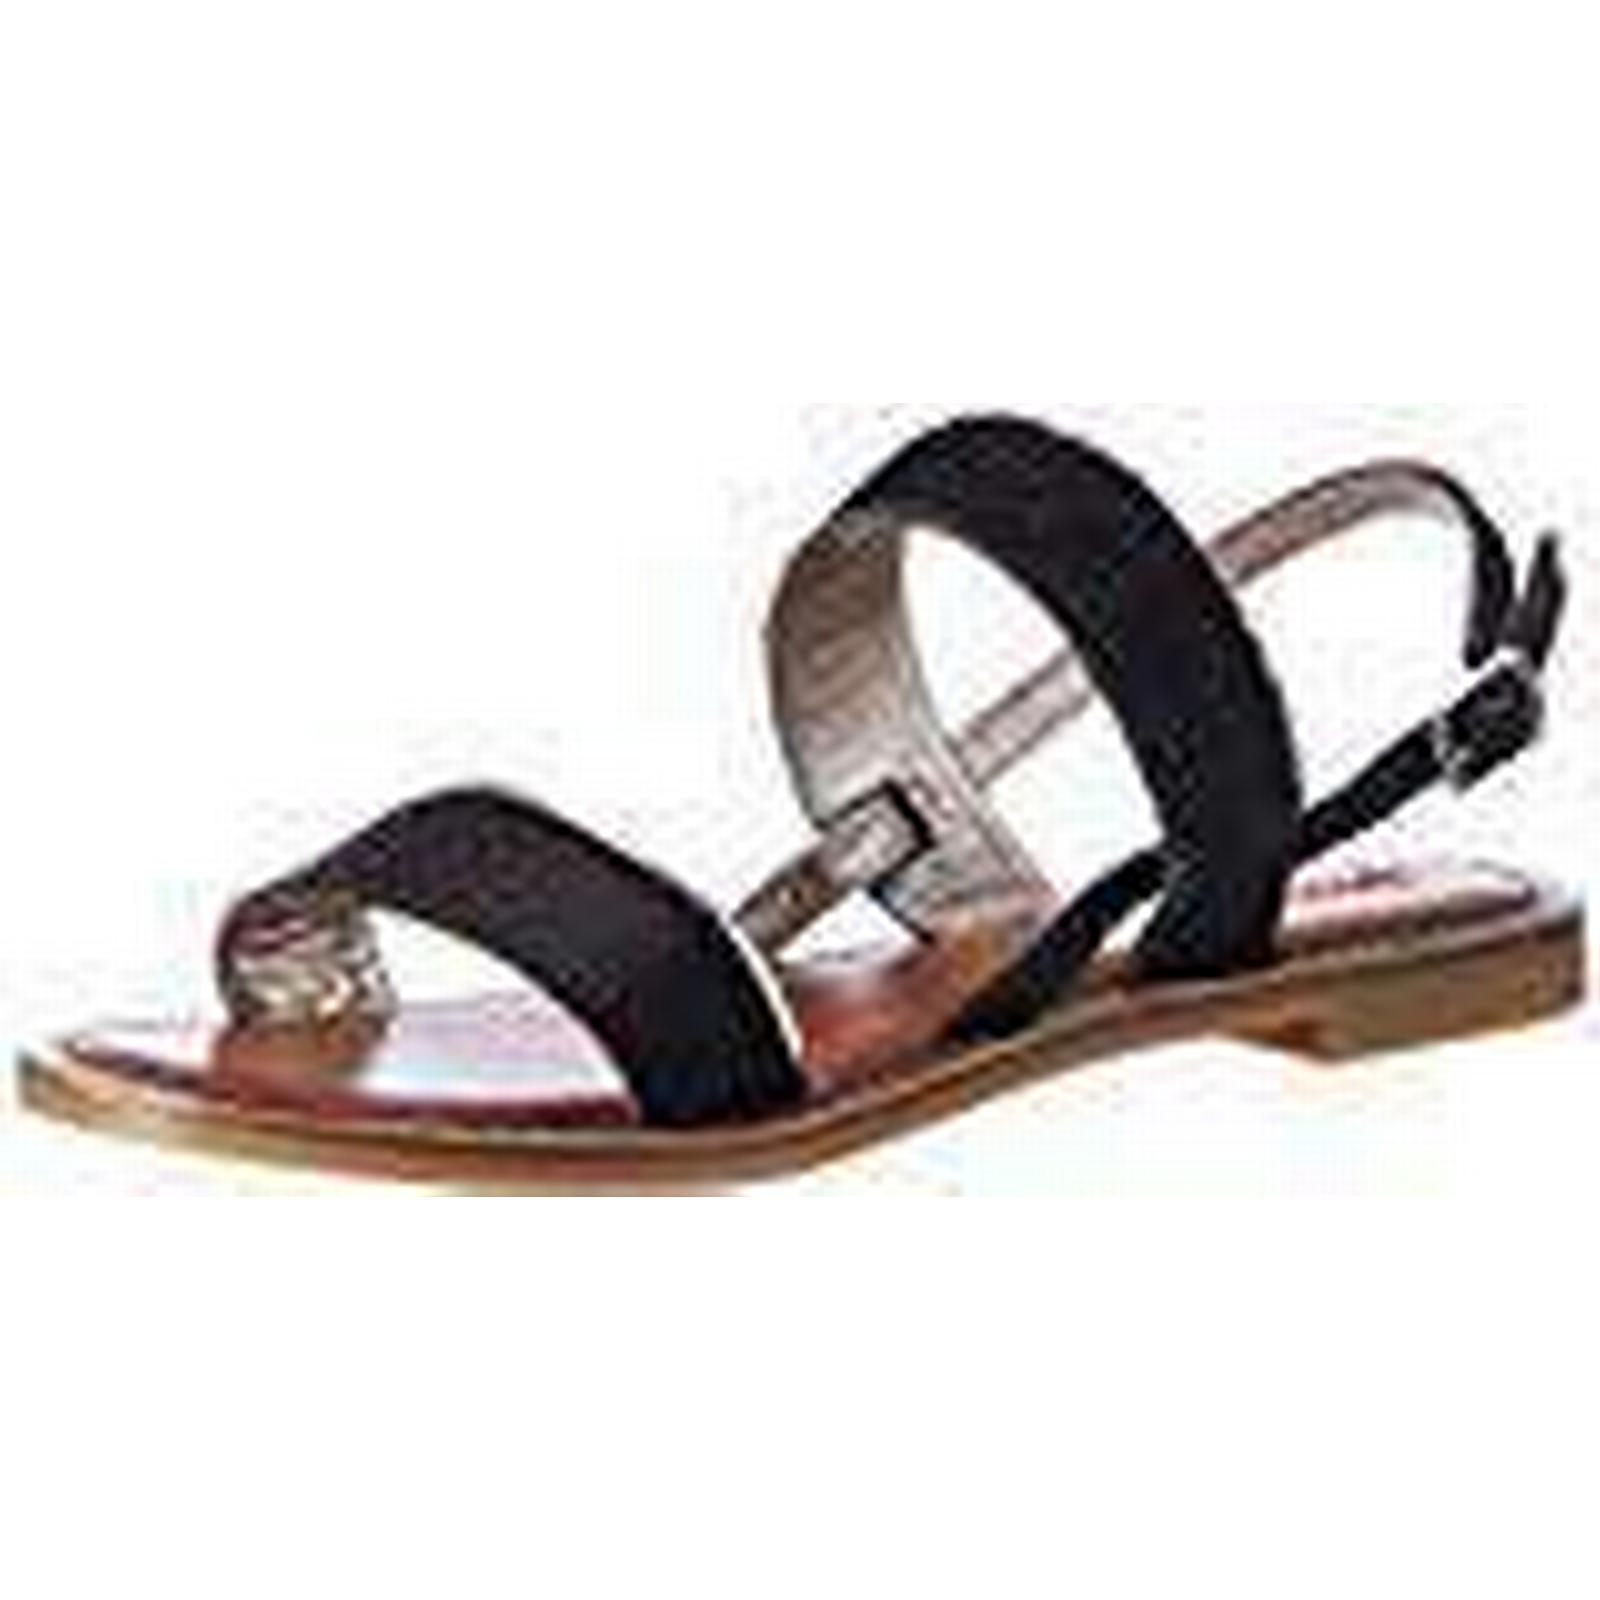 Inuovo Women's (Black-Pewter), 7229 Strappy Sandals, Black (Black-Pewter), Women's 40 EU 909e42